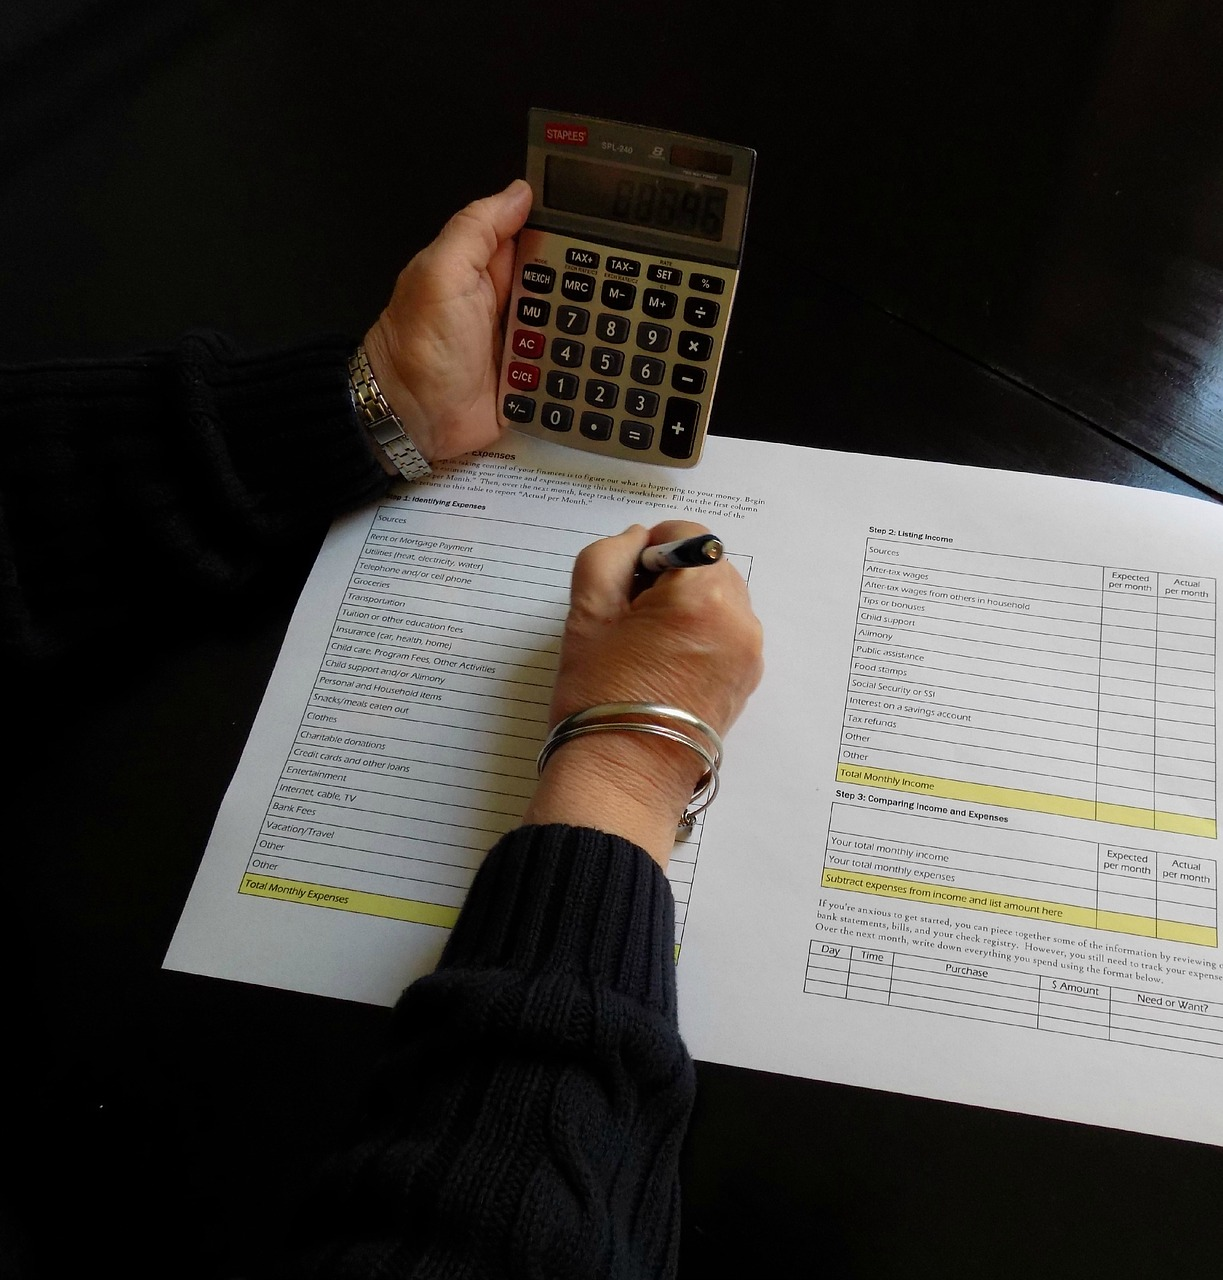 A person calculating their budget with a calculator